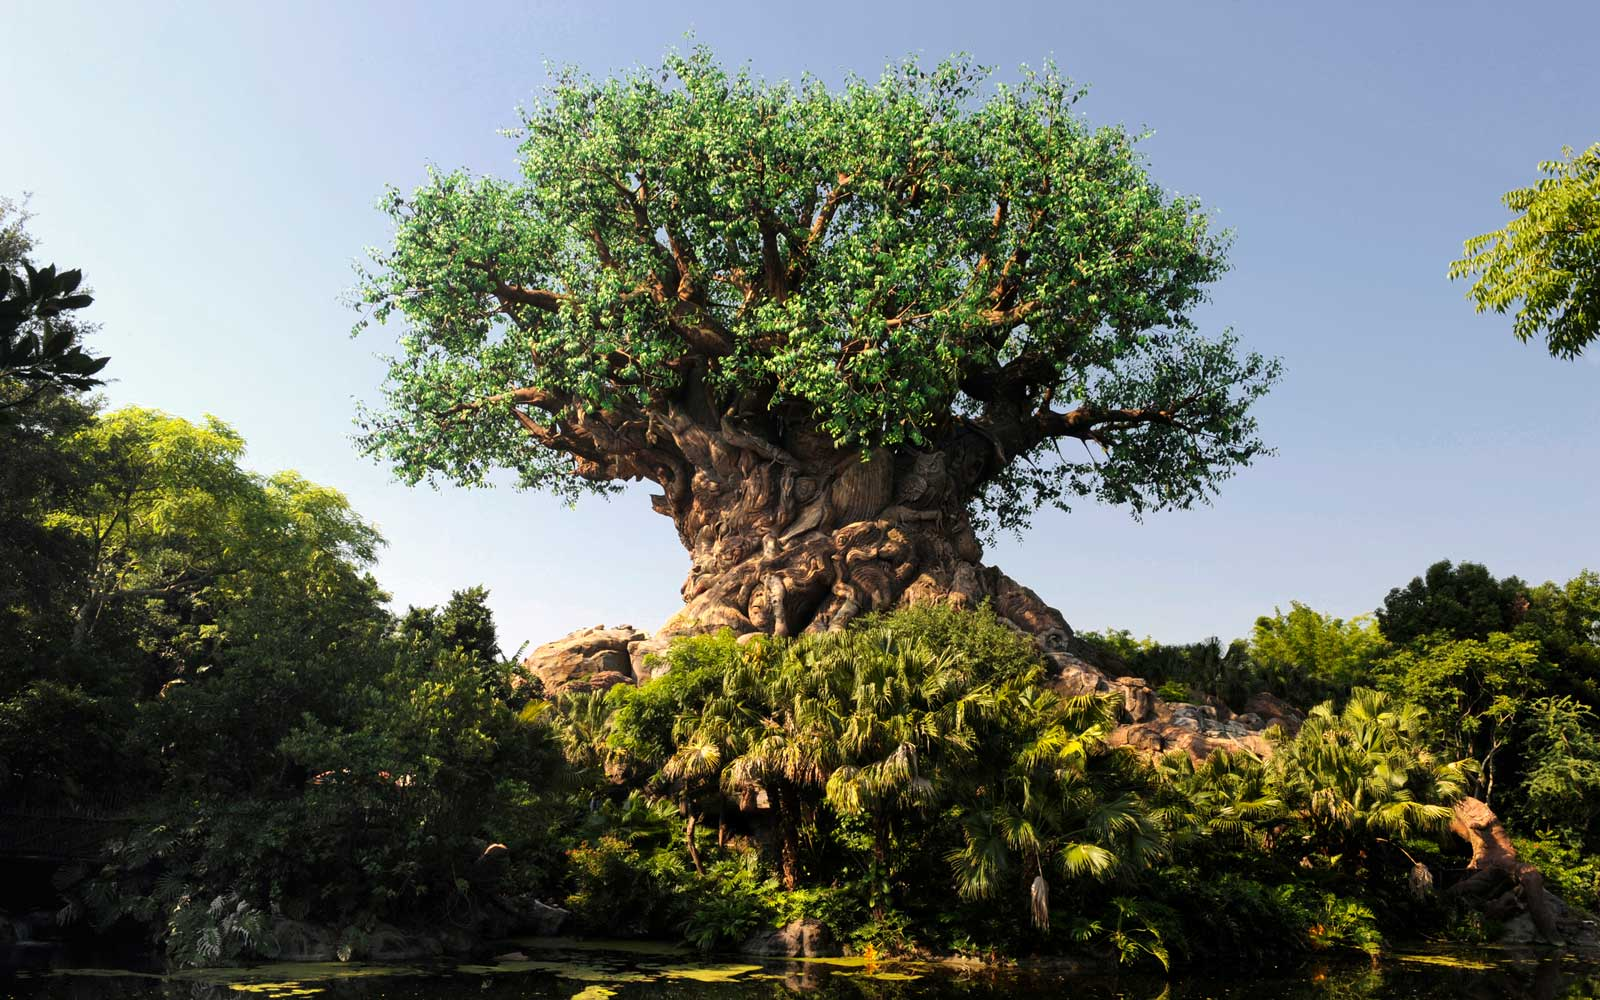 Disney Animal Kingdom Guide: Best Rides, Food, Shows, and Insider Tips